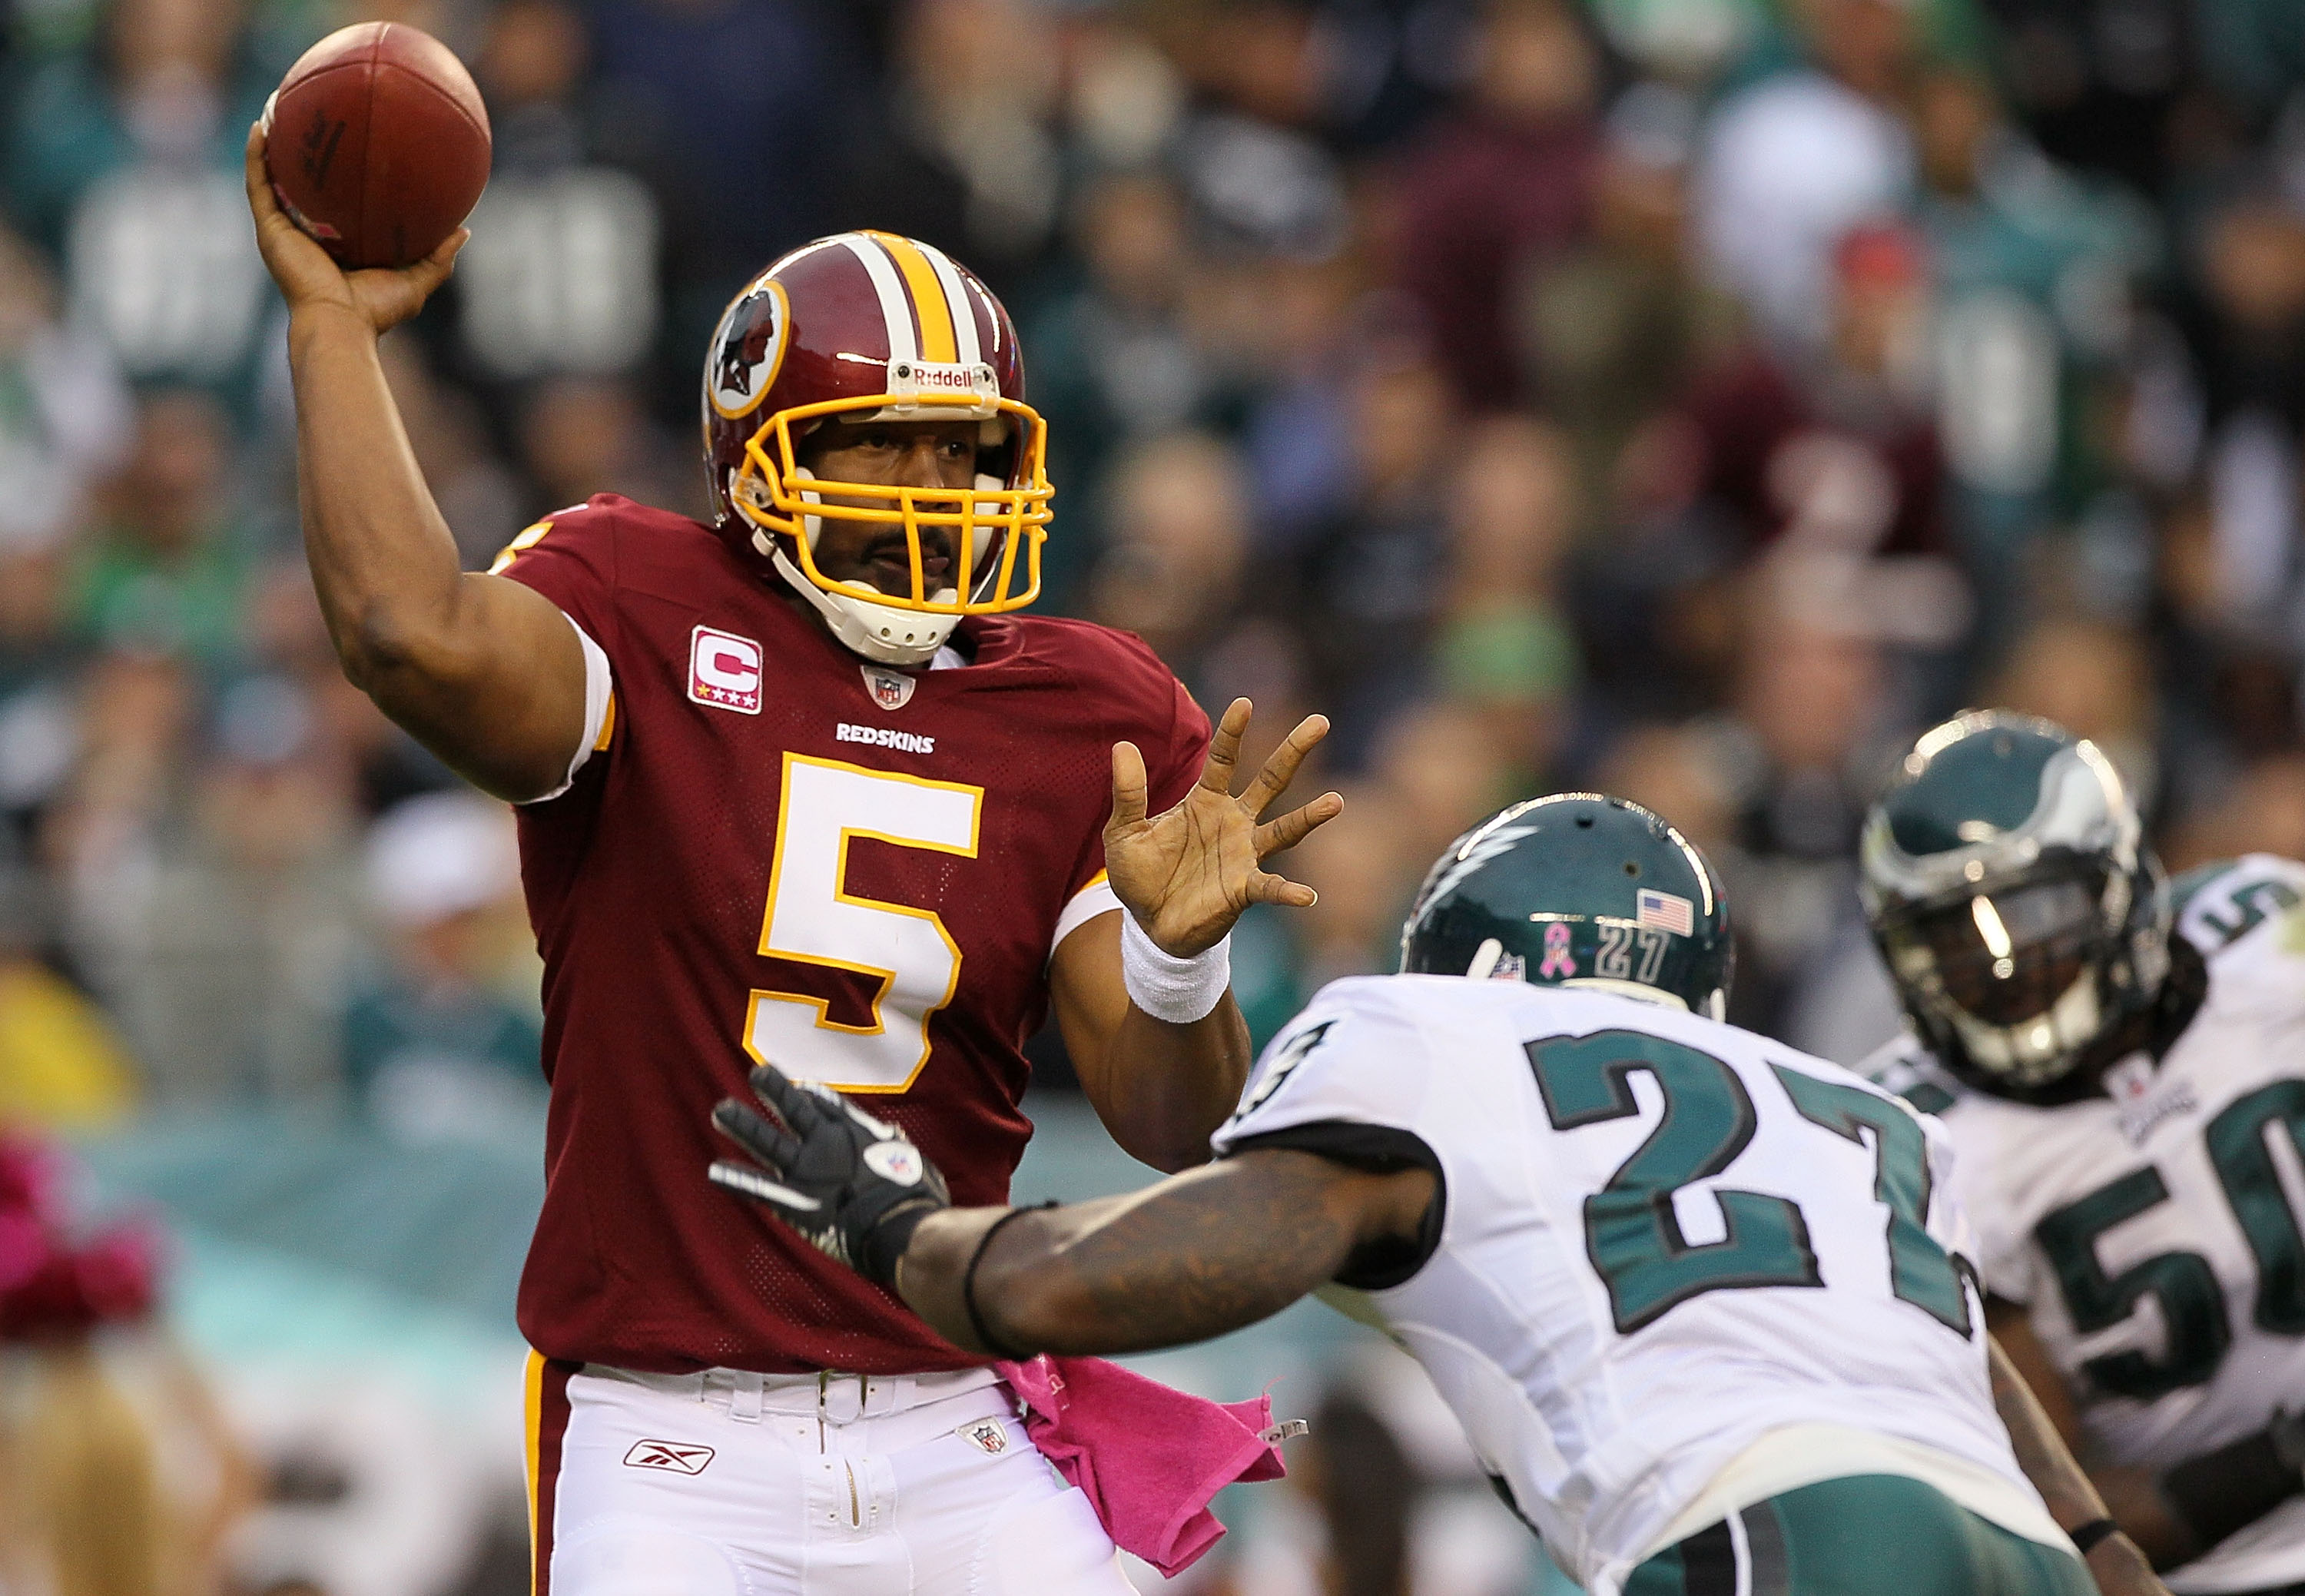 PHILADELPHIA - OCTOBER 03:  Donovan McNabb #5 of the Washington Redskins throws a pass under pressure from Quintin Mikell #27 of the Philadelphia Eagles on October 3, 2010 at Lincoln Financial Field in Philadelphia, Pennsylvania.  (Photo by Jim McIsaac/Ge